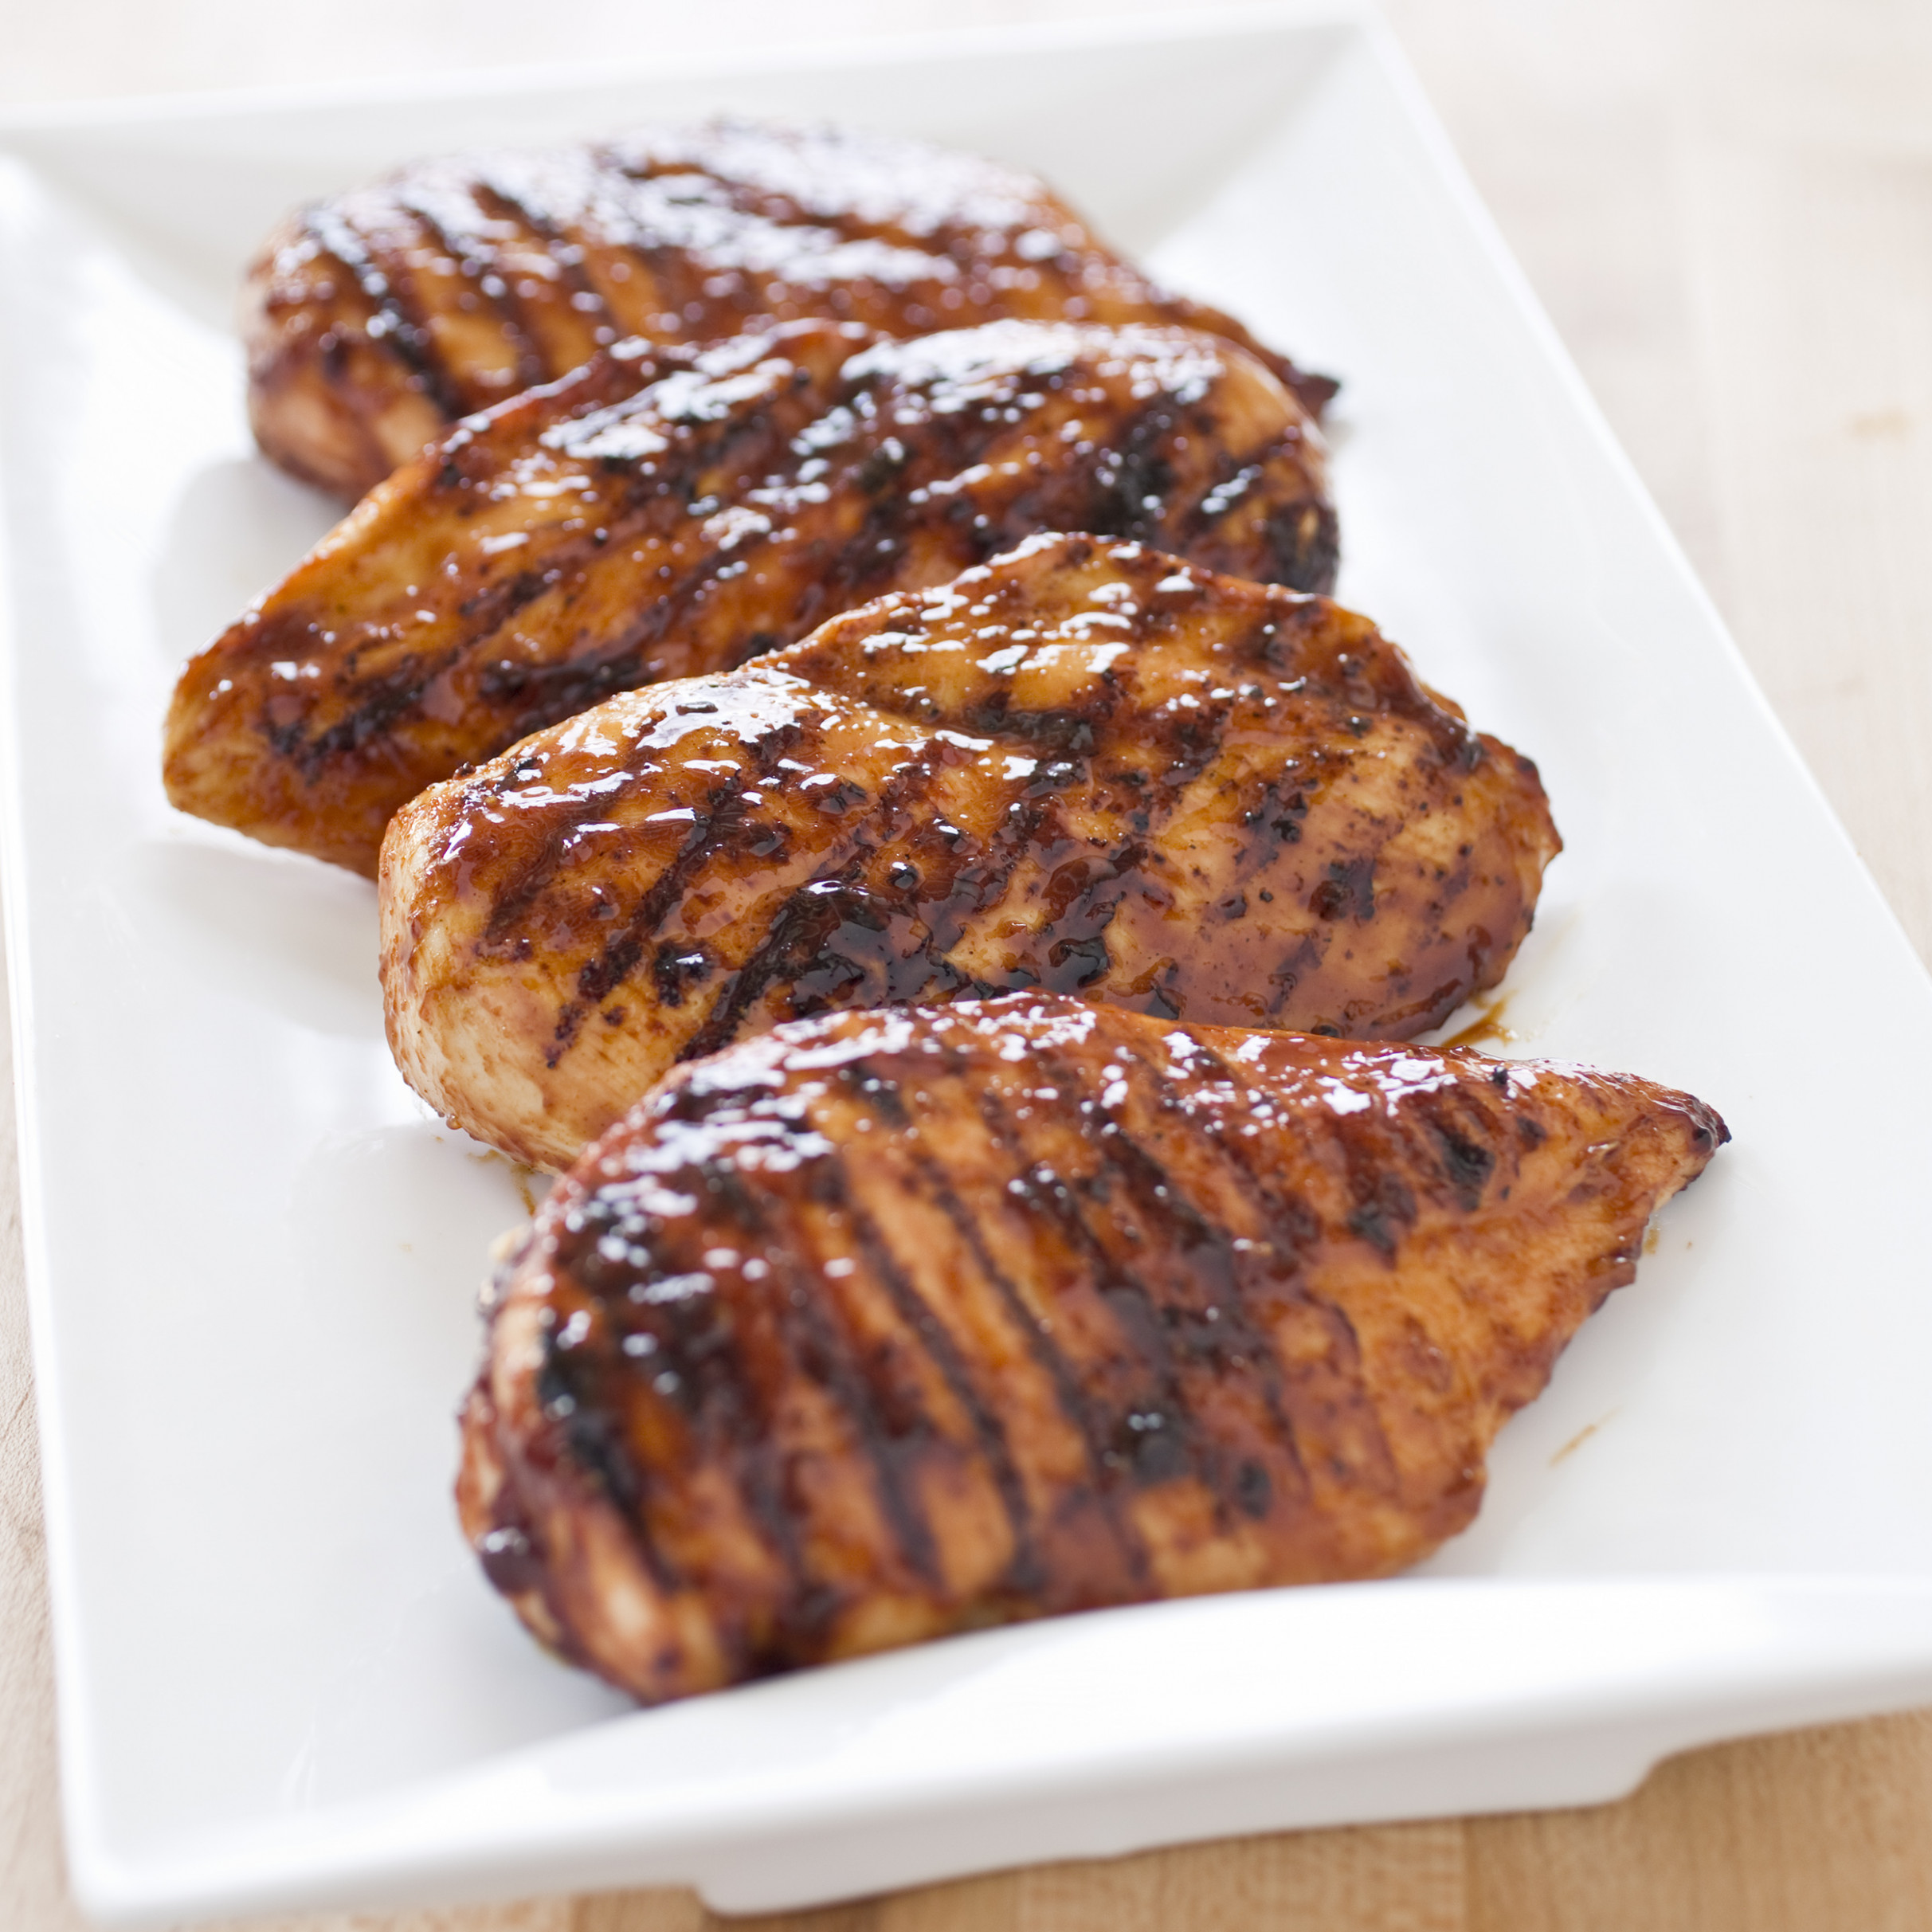 Grilled Glazed Boneless, Skinless Chicken Breasts - recipes of boneless chicken